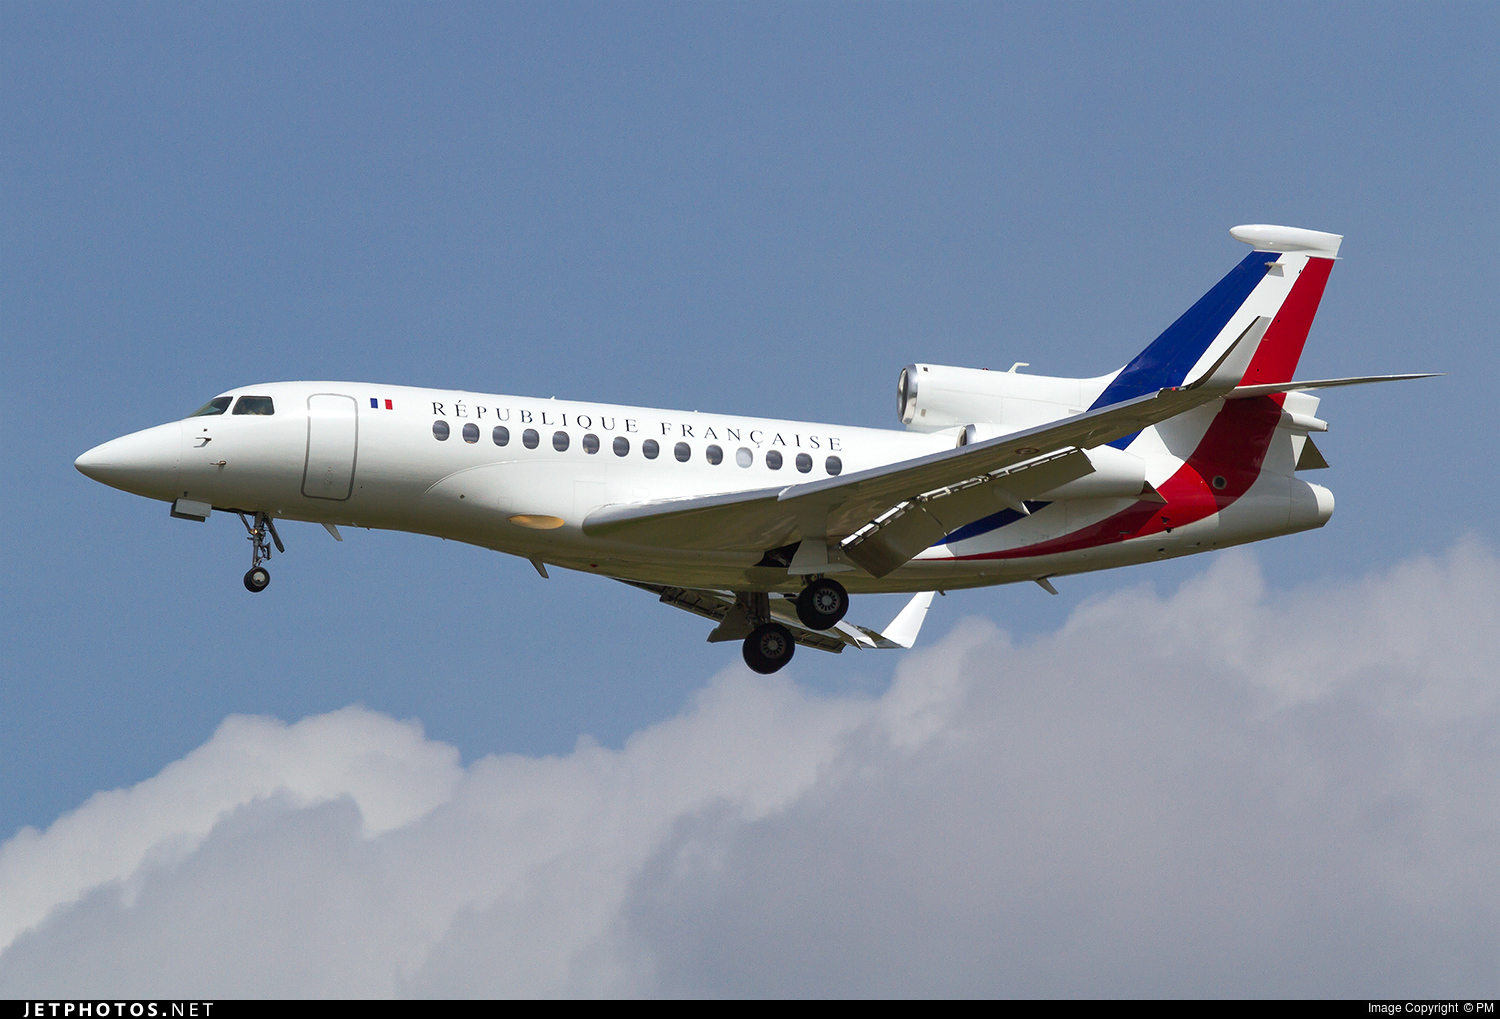 68 dassault falcon 7x france air force pm jetphotos